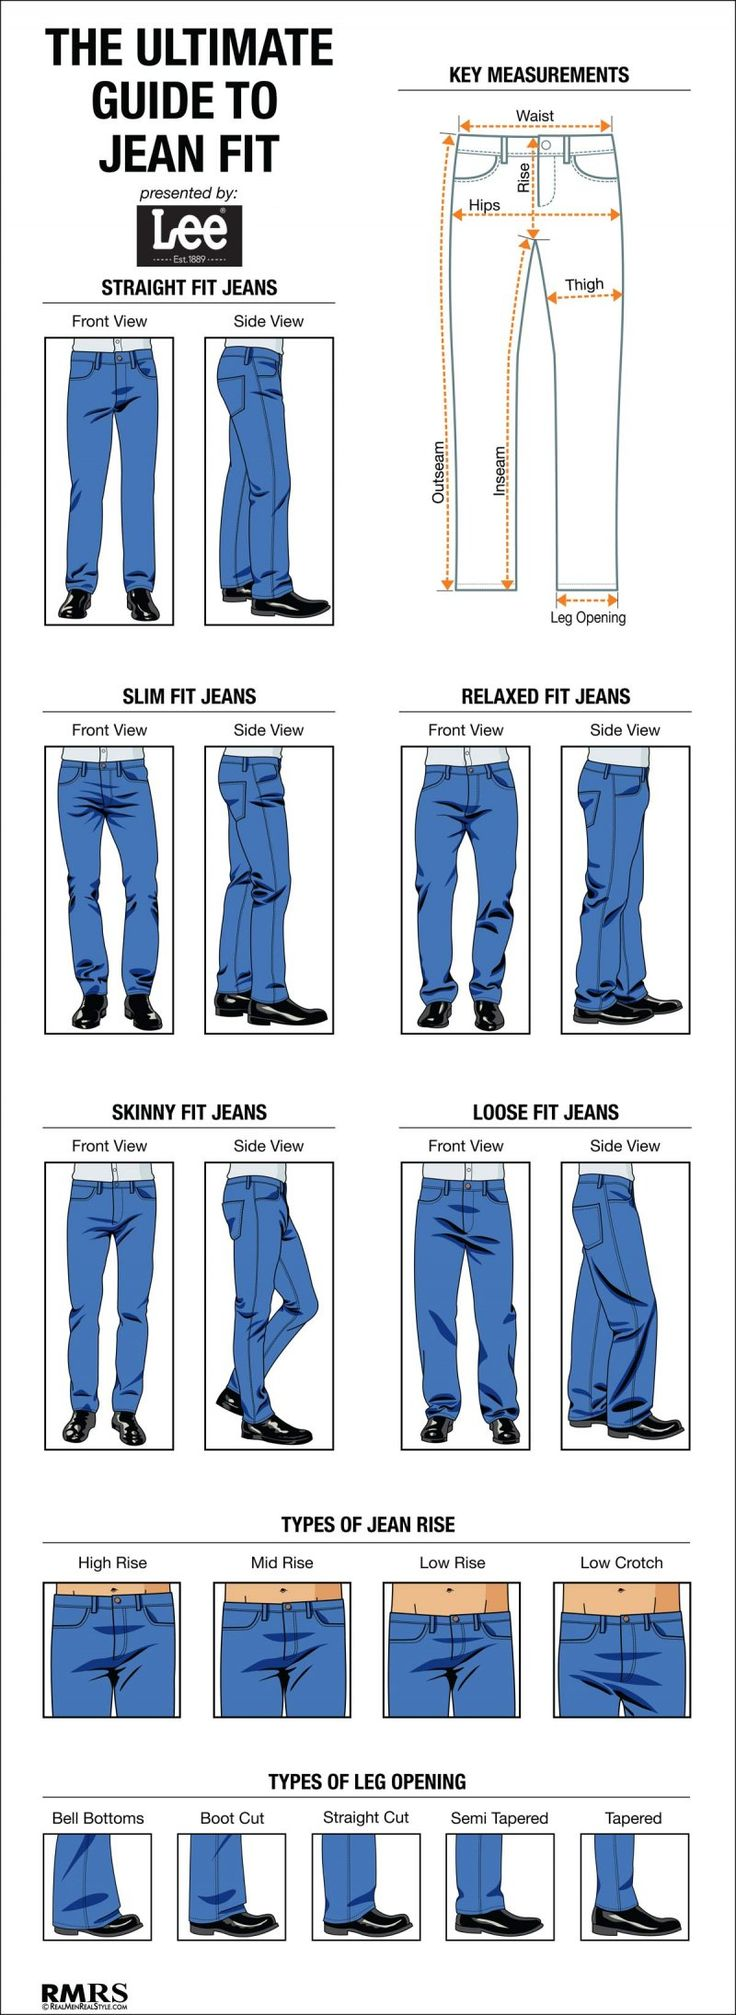 Business Insider: How Men's Jeans Should Fit #mensfashion #infographic